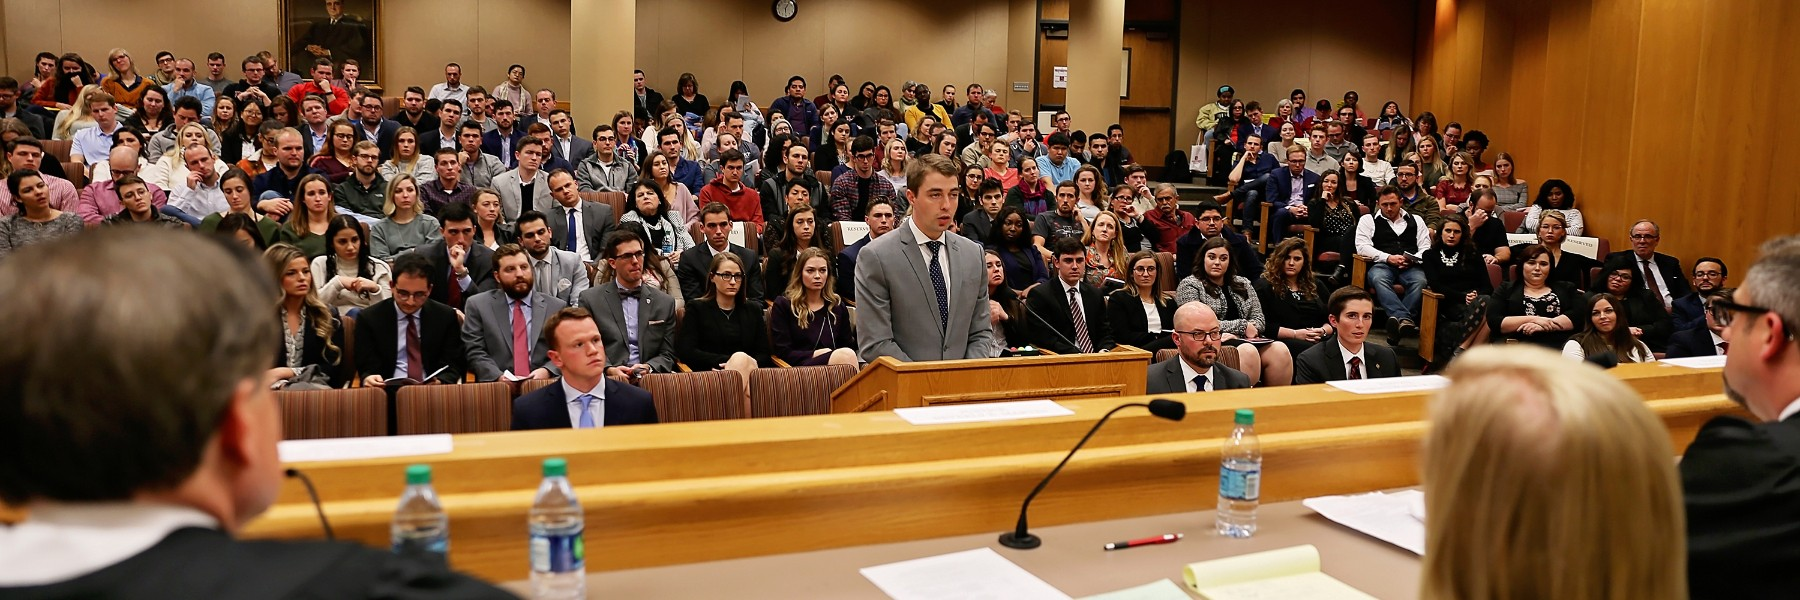 Sherman Minton Moot Court Competition at the Maurer School of Law. A single student in a suit speaks before a panel of judges with a large audience behind him.